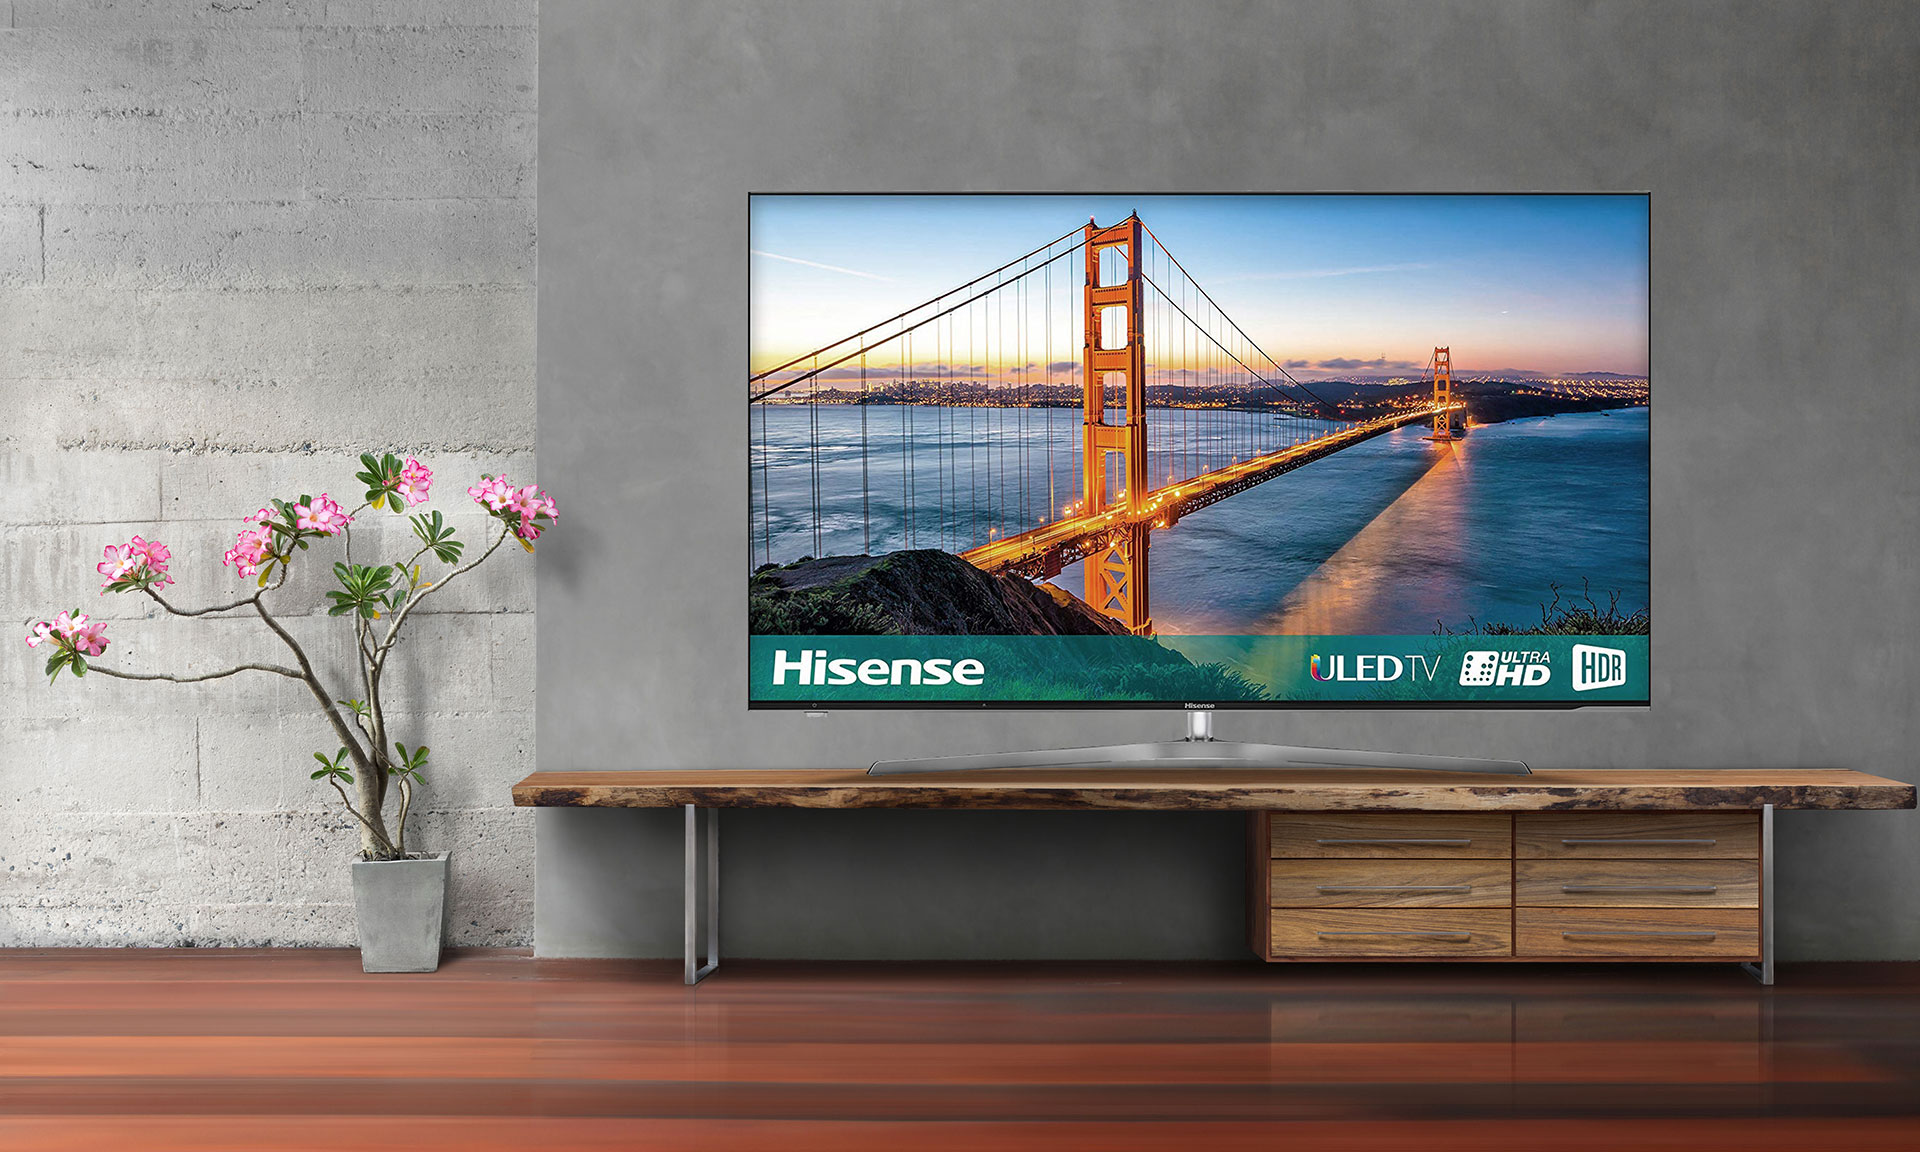 Buy A Tv Should You Buy A Hisense Tv Over An Lg Or Samsung Which